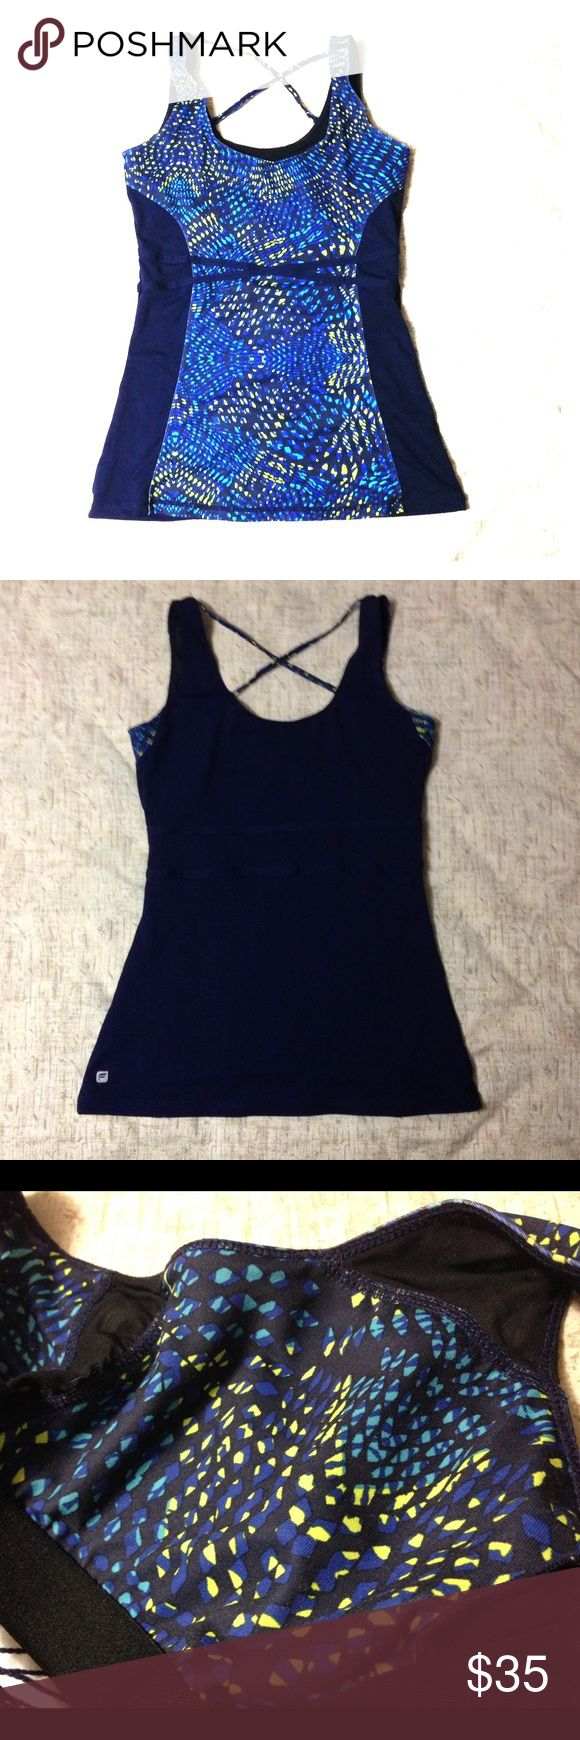 """Fabletics Hawthorne Tank Fabletics Hawthorne Tank in navy blue with geometric green and turquoise pattern in front. Crisscross design in upper back. Shelf bra has opening for cup inserts but I no longer have them. Only wore once. 25.5"""" from shoulder to bottom hem. Fabletics Tops Tank Tops"""